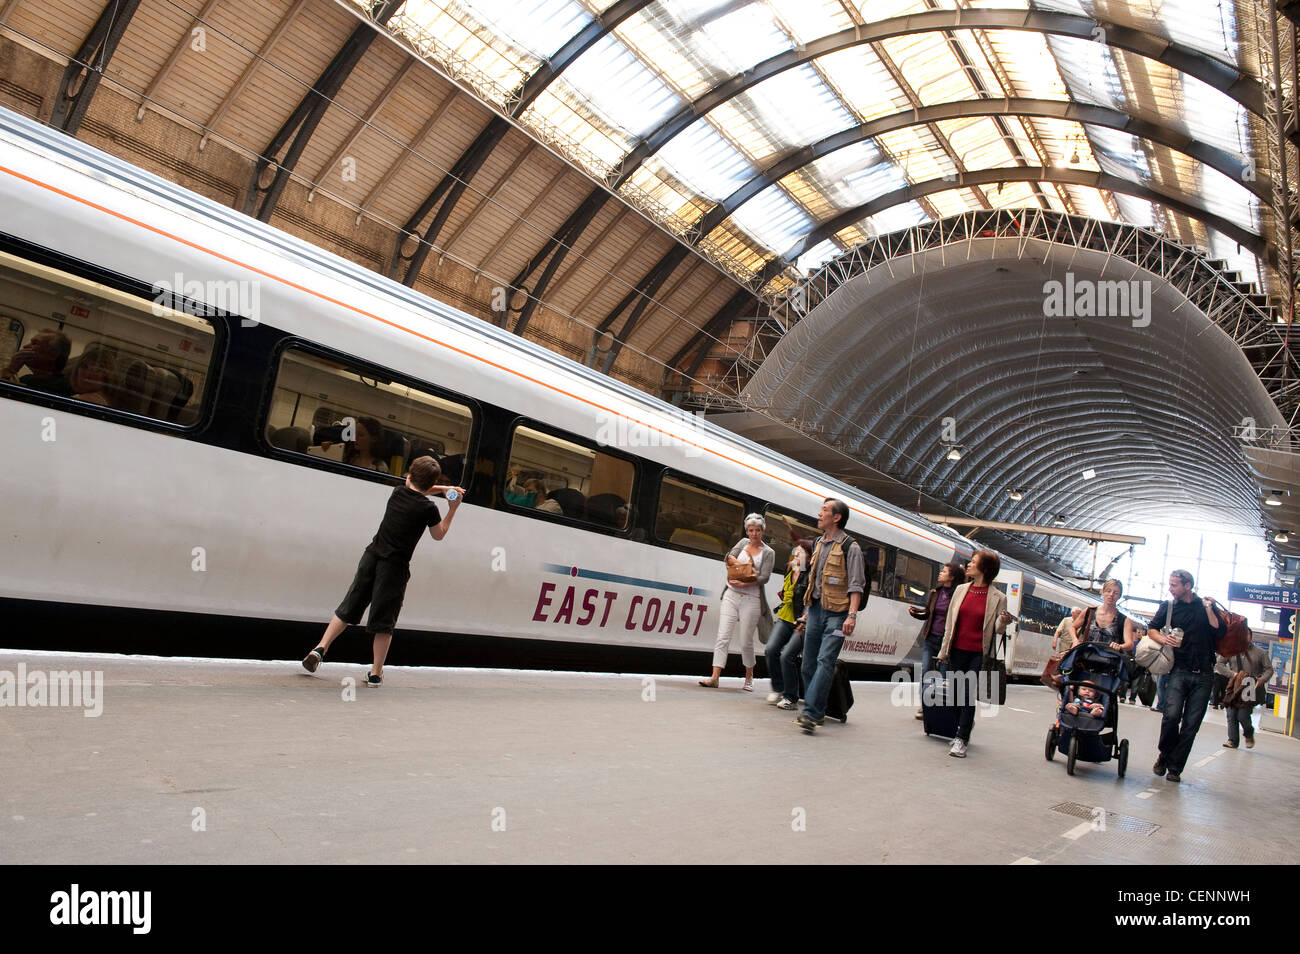 Passengers walking down a platform alongside an East Coast train at a railway station in England. - Stock Image